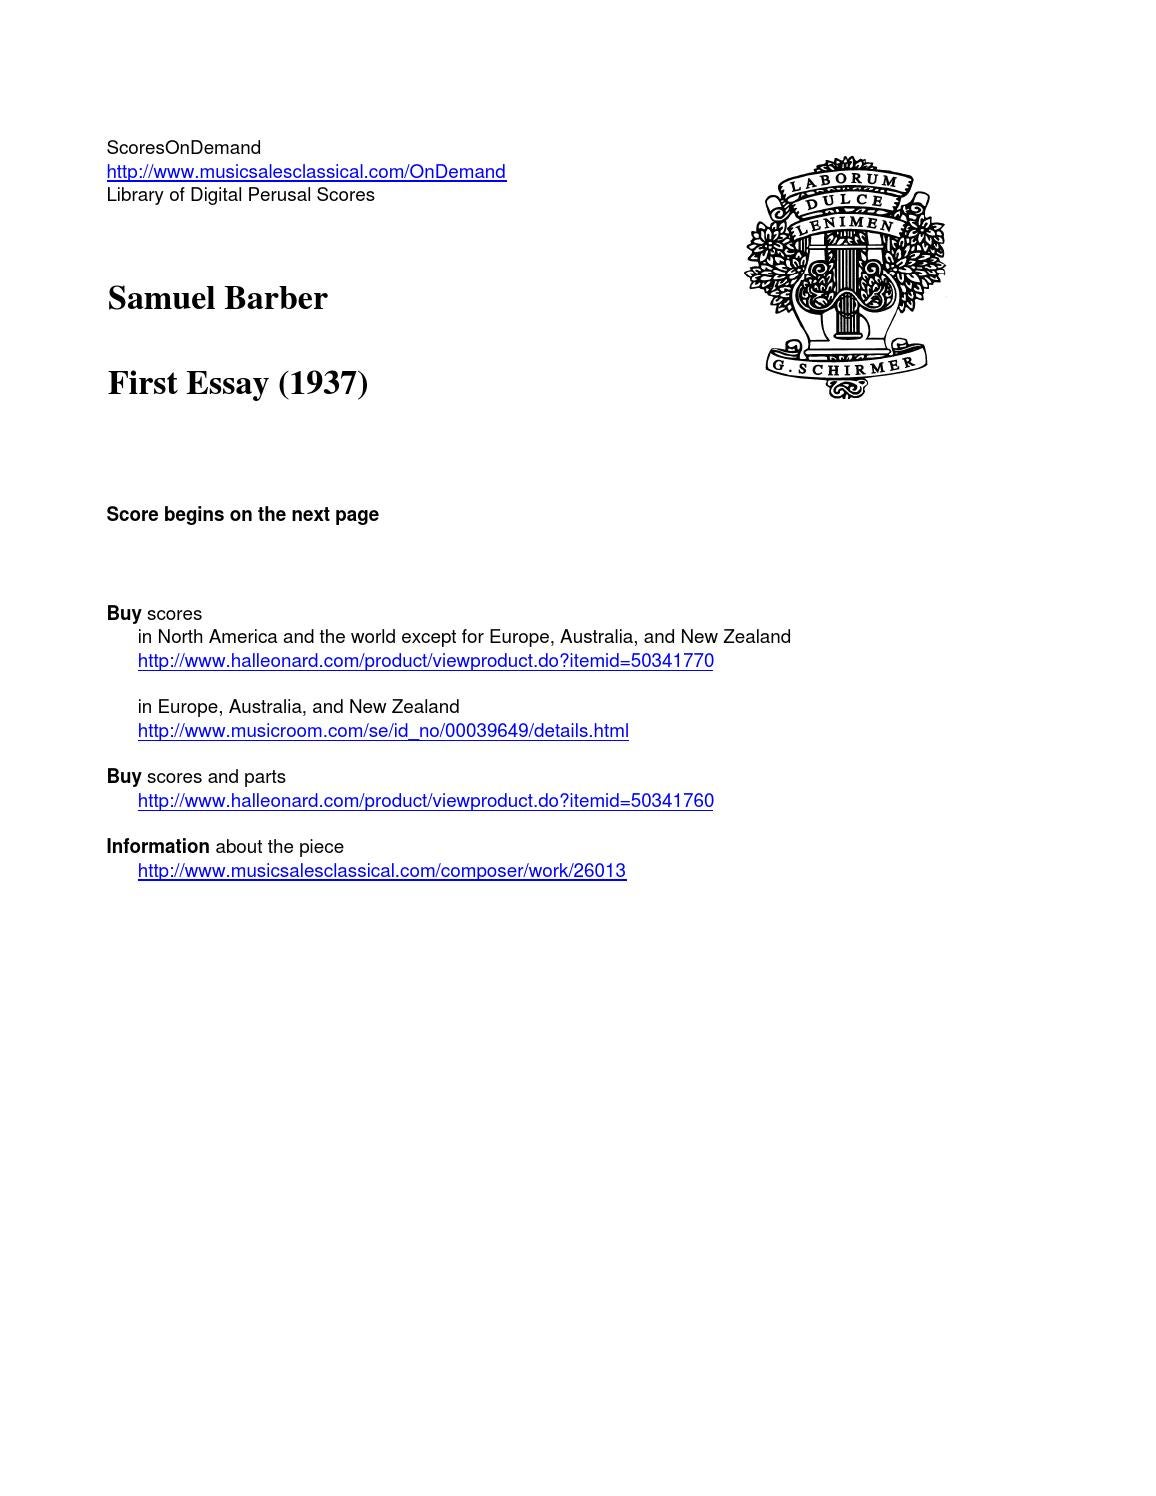 barber first essay by scoresondemand issuu